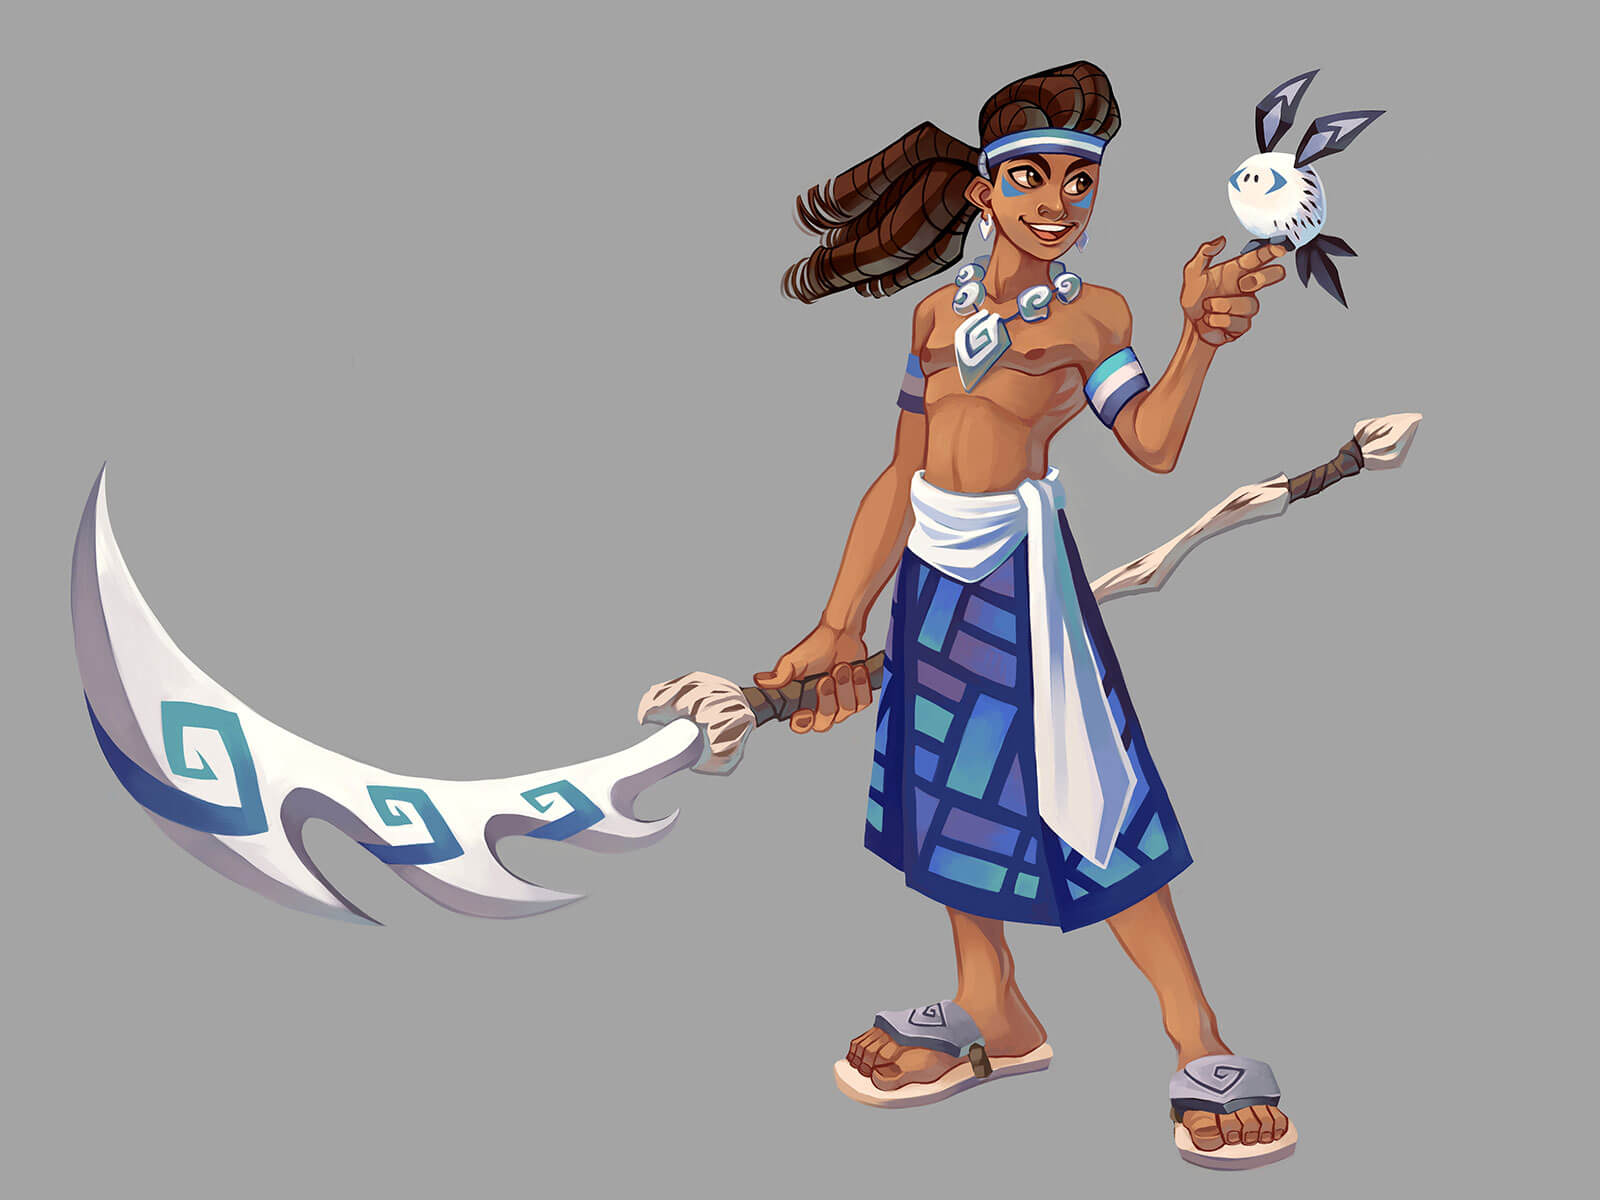 Man with spear in stylized Pacific Islander dress